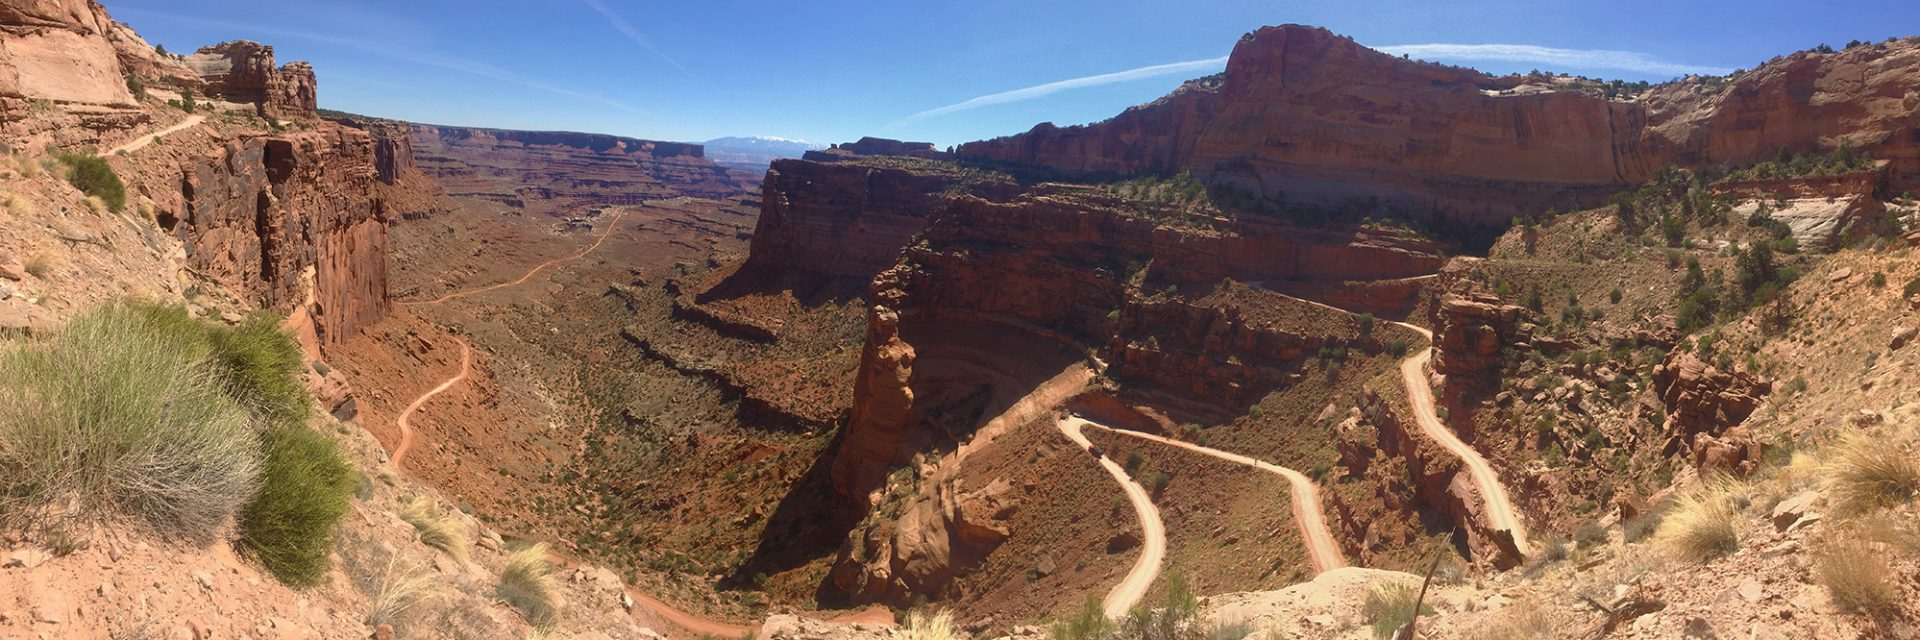 Shafer Trail Road, White Rim (by guest Bob W)